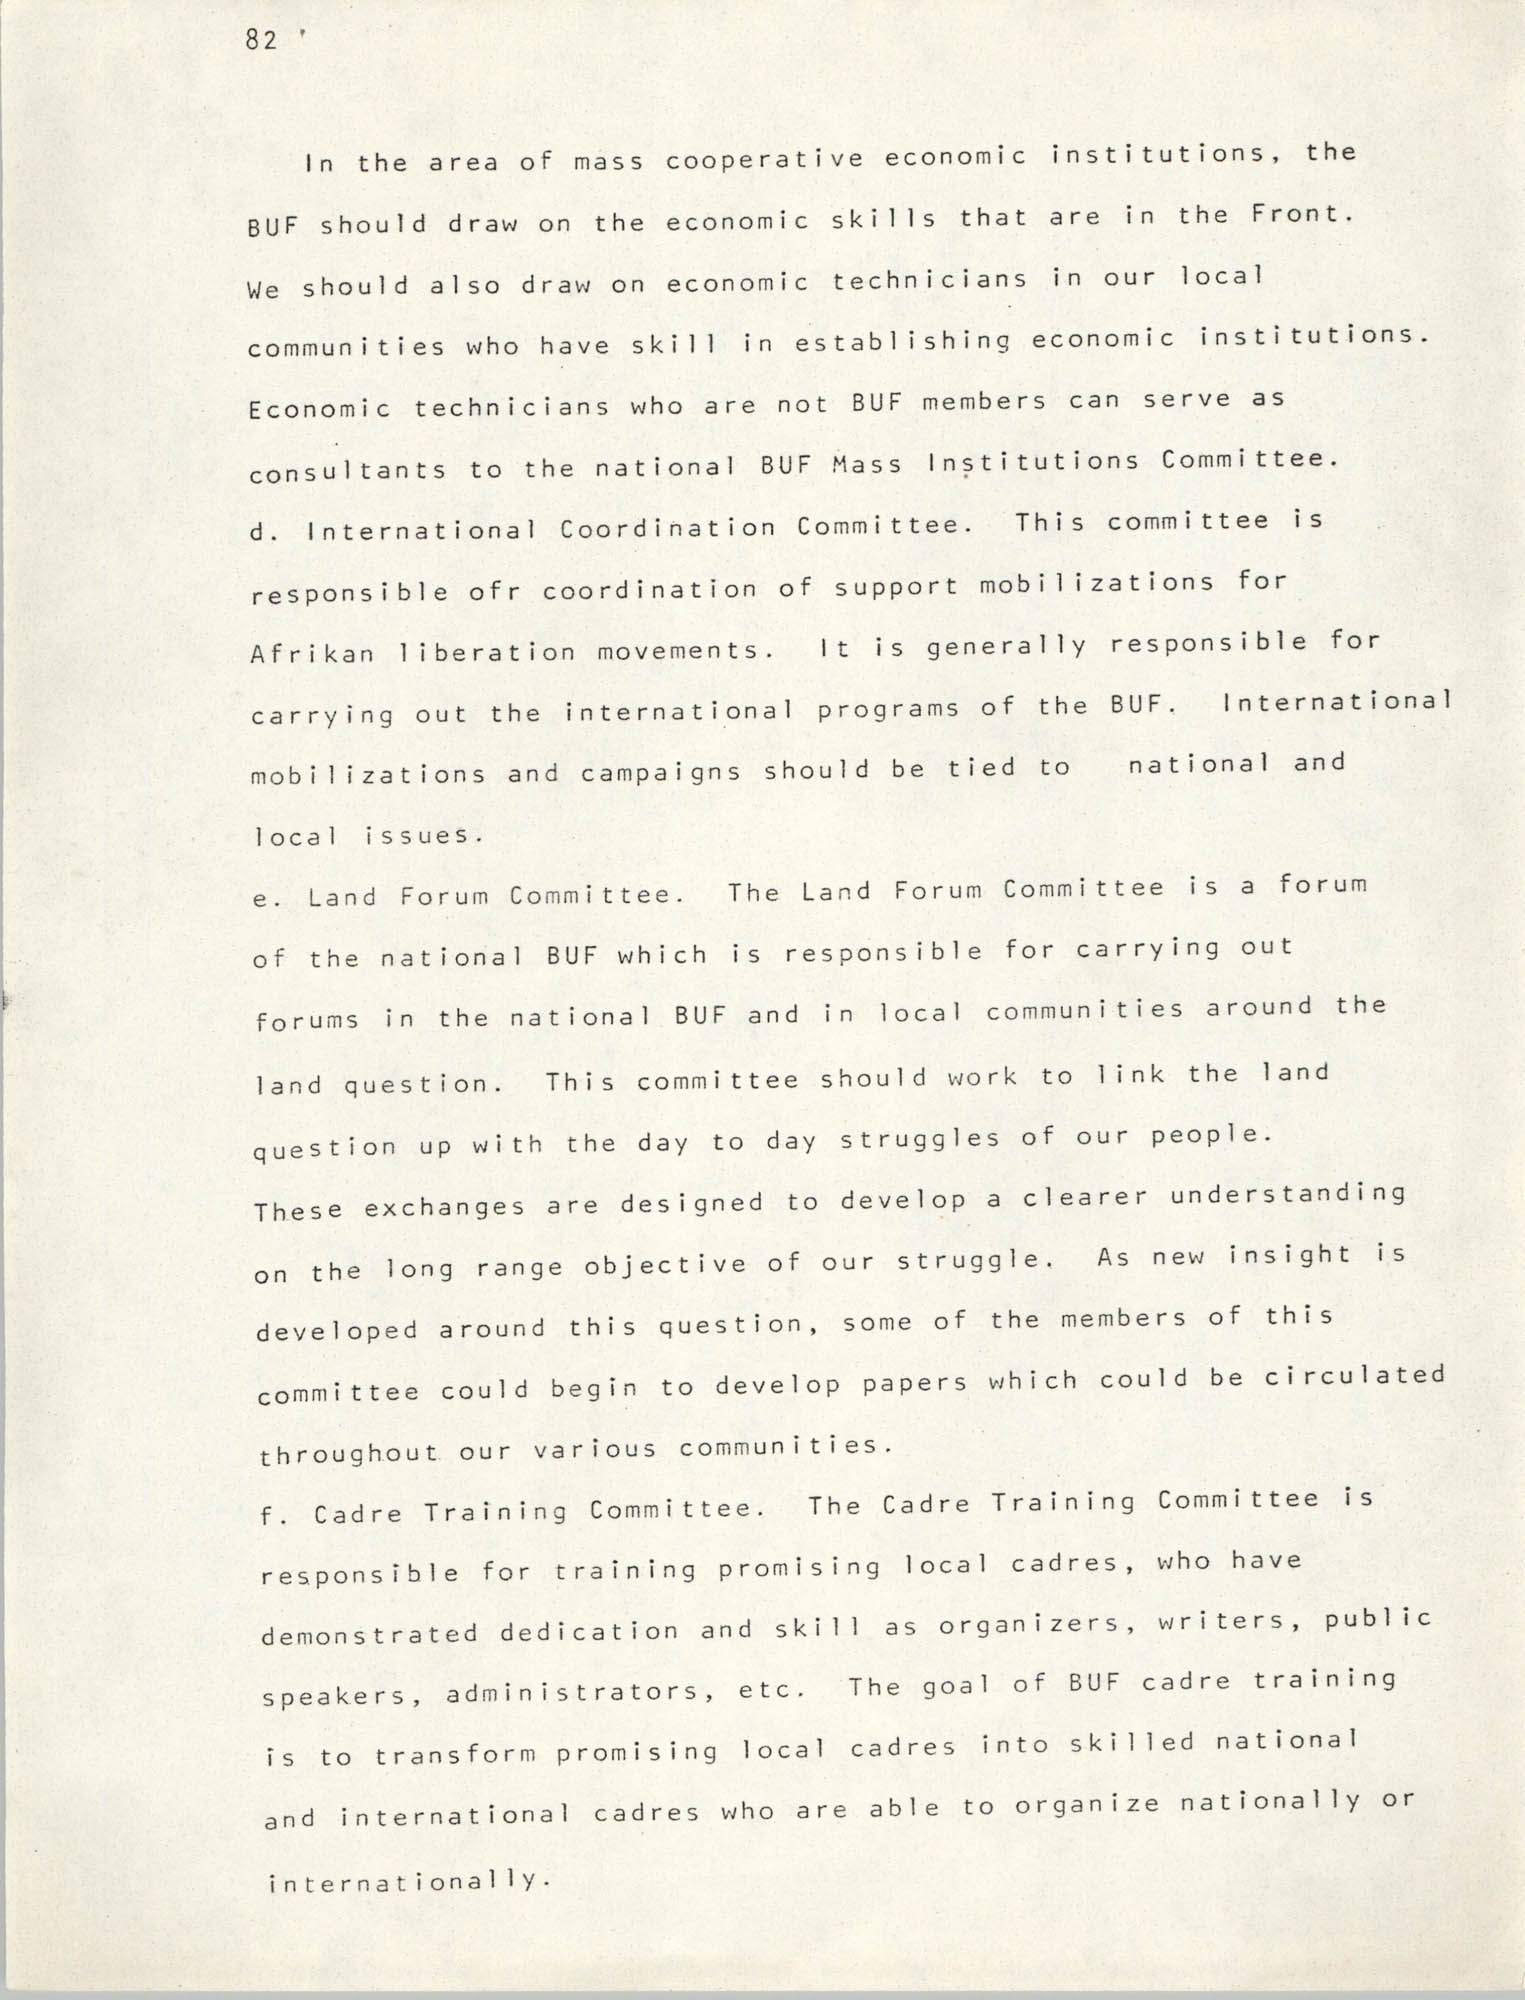 Pan-African Committee of the Black United Front, Page 82